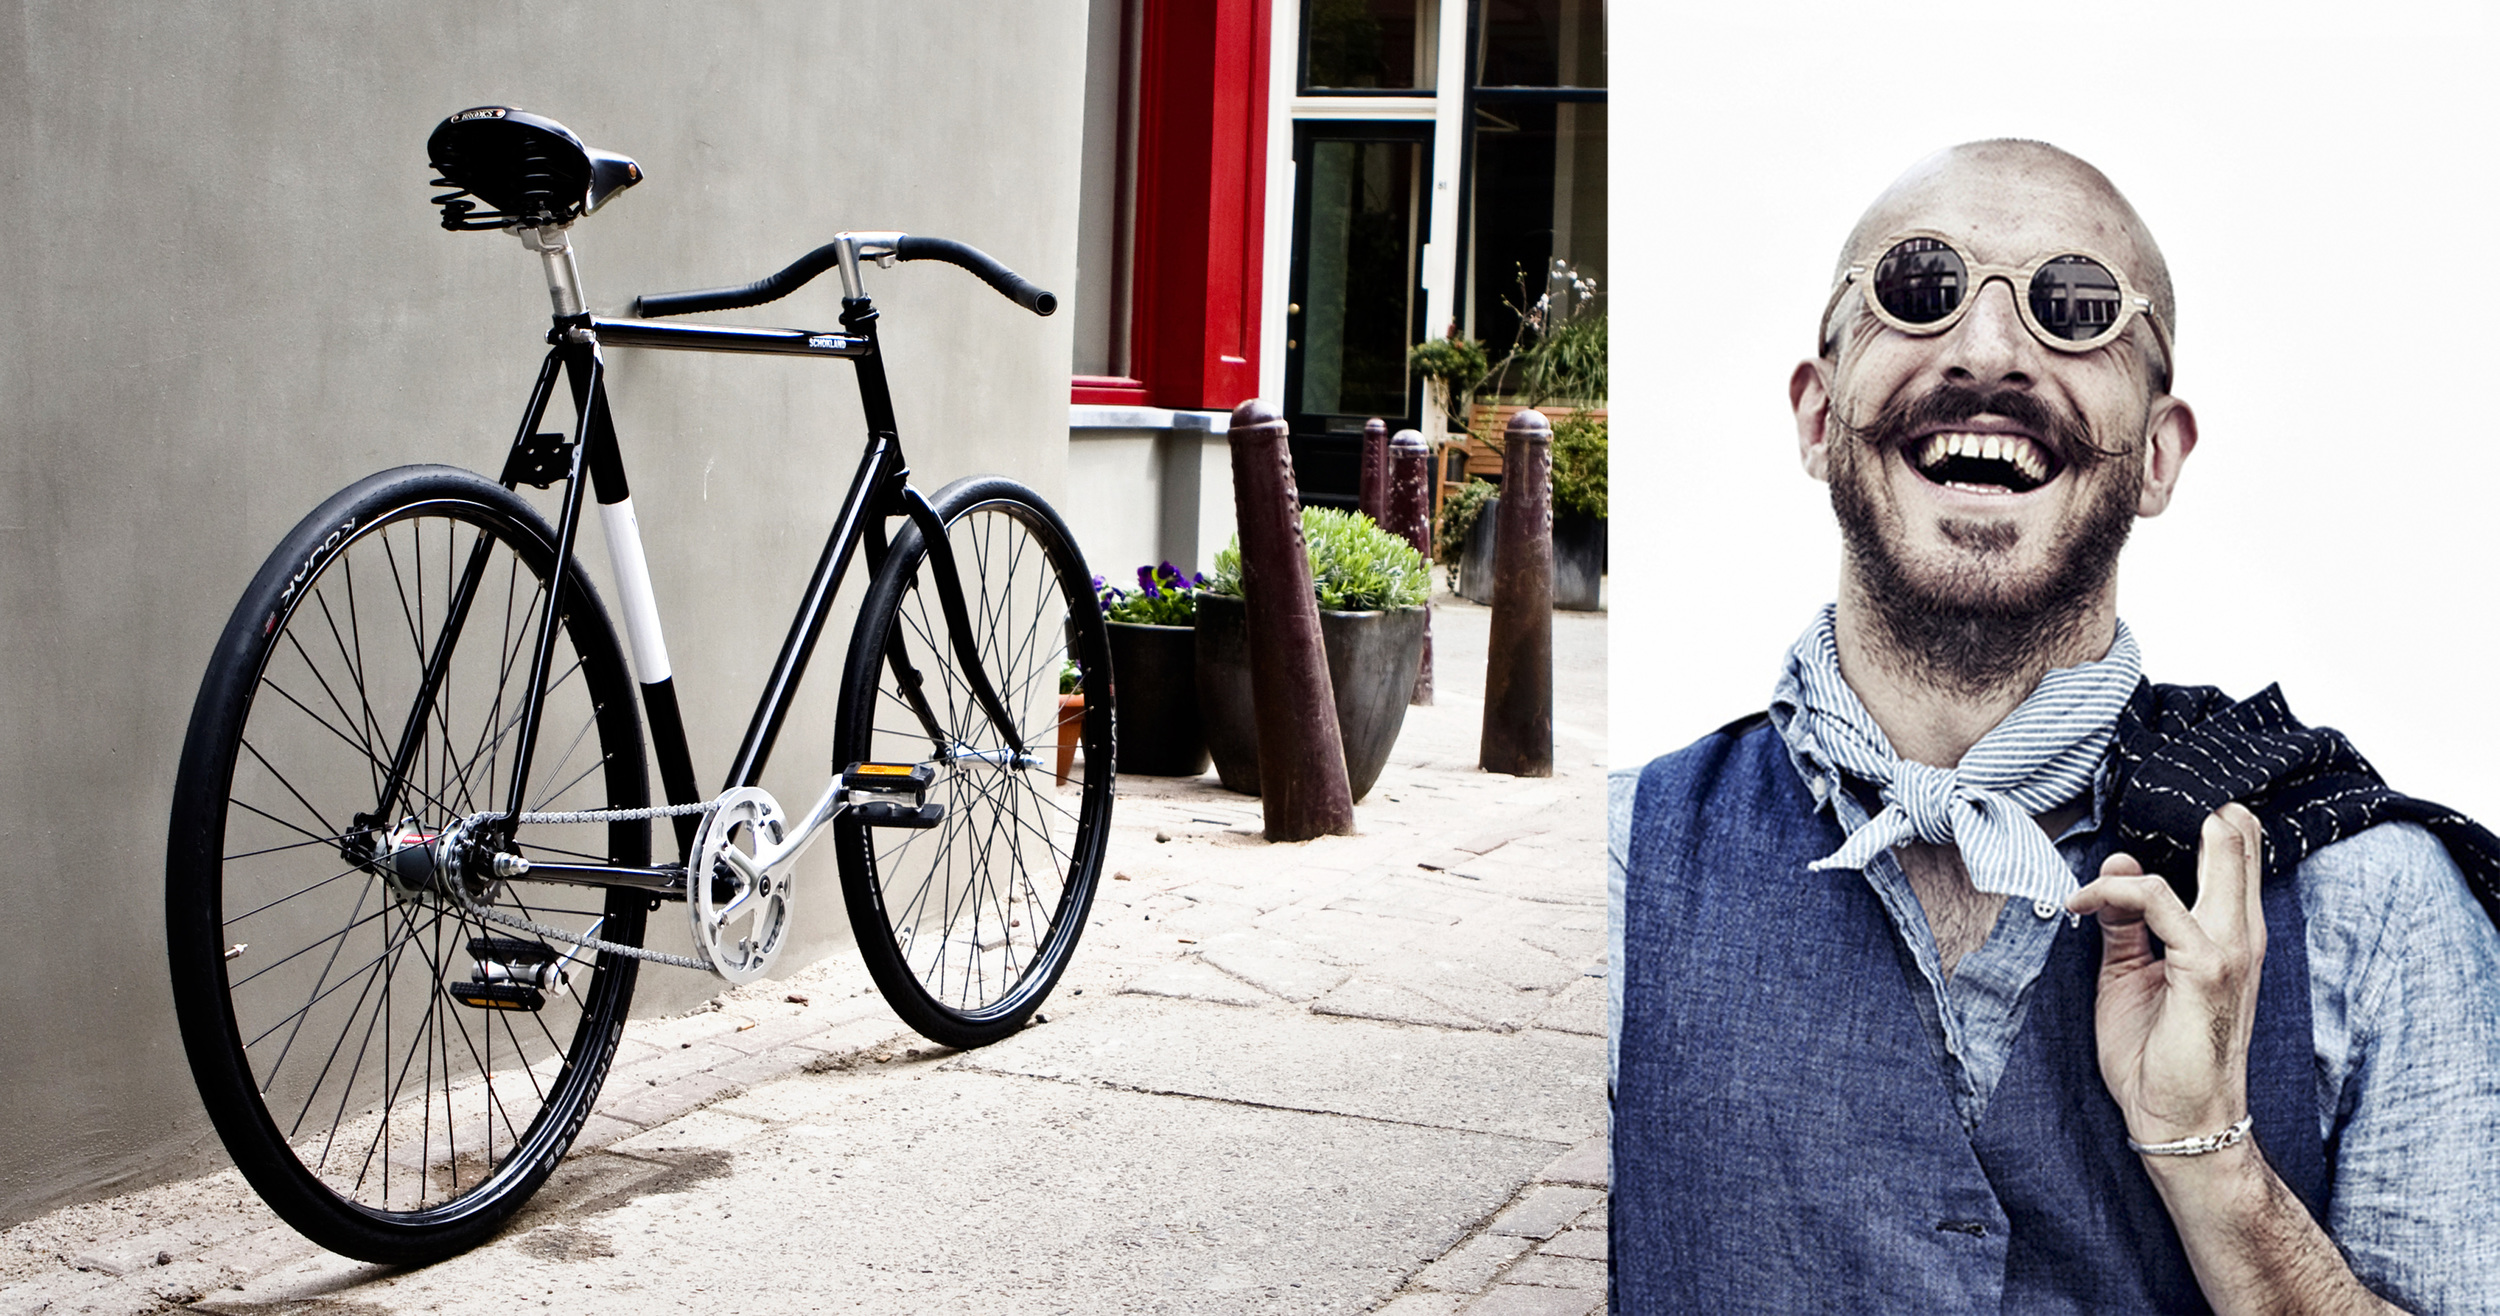 industrial design, product design, bicycle, mobility